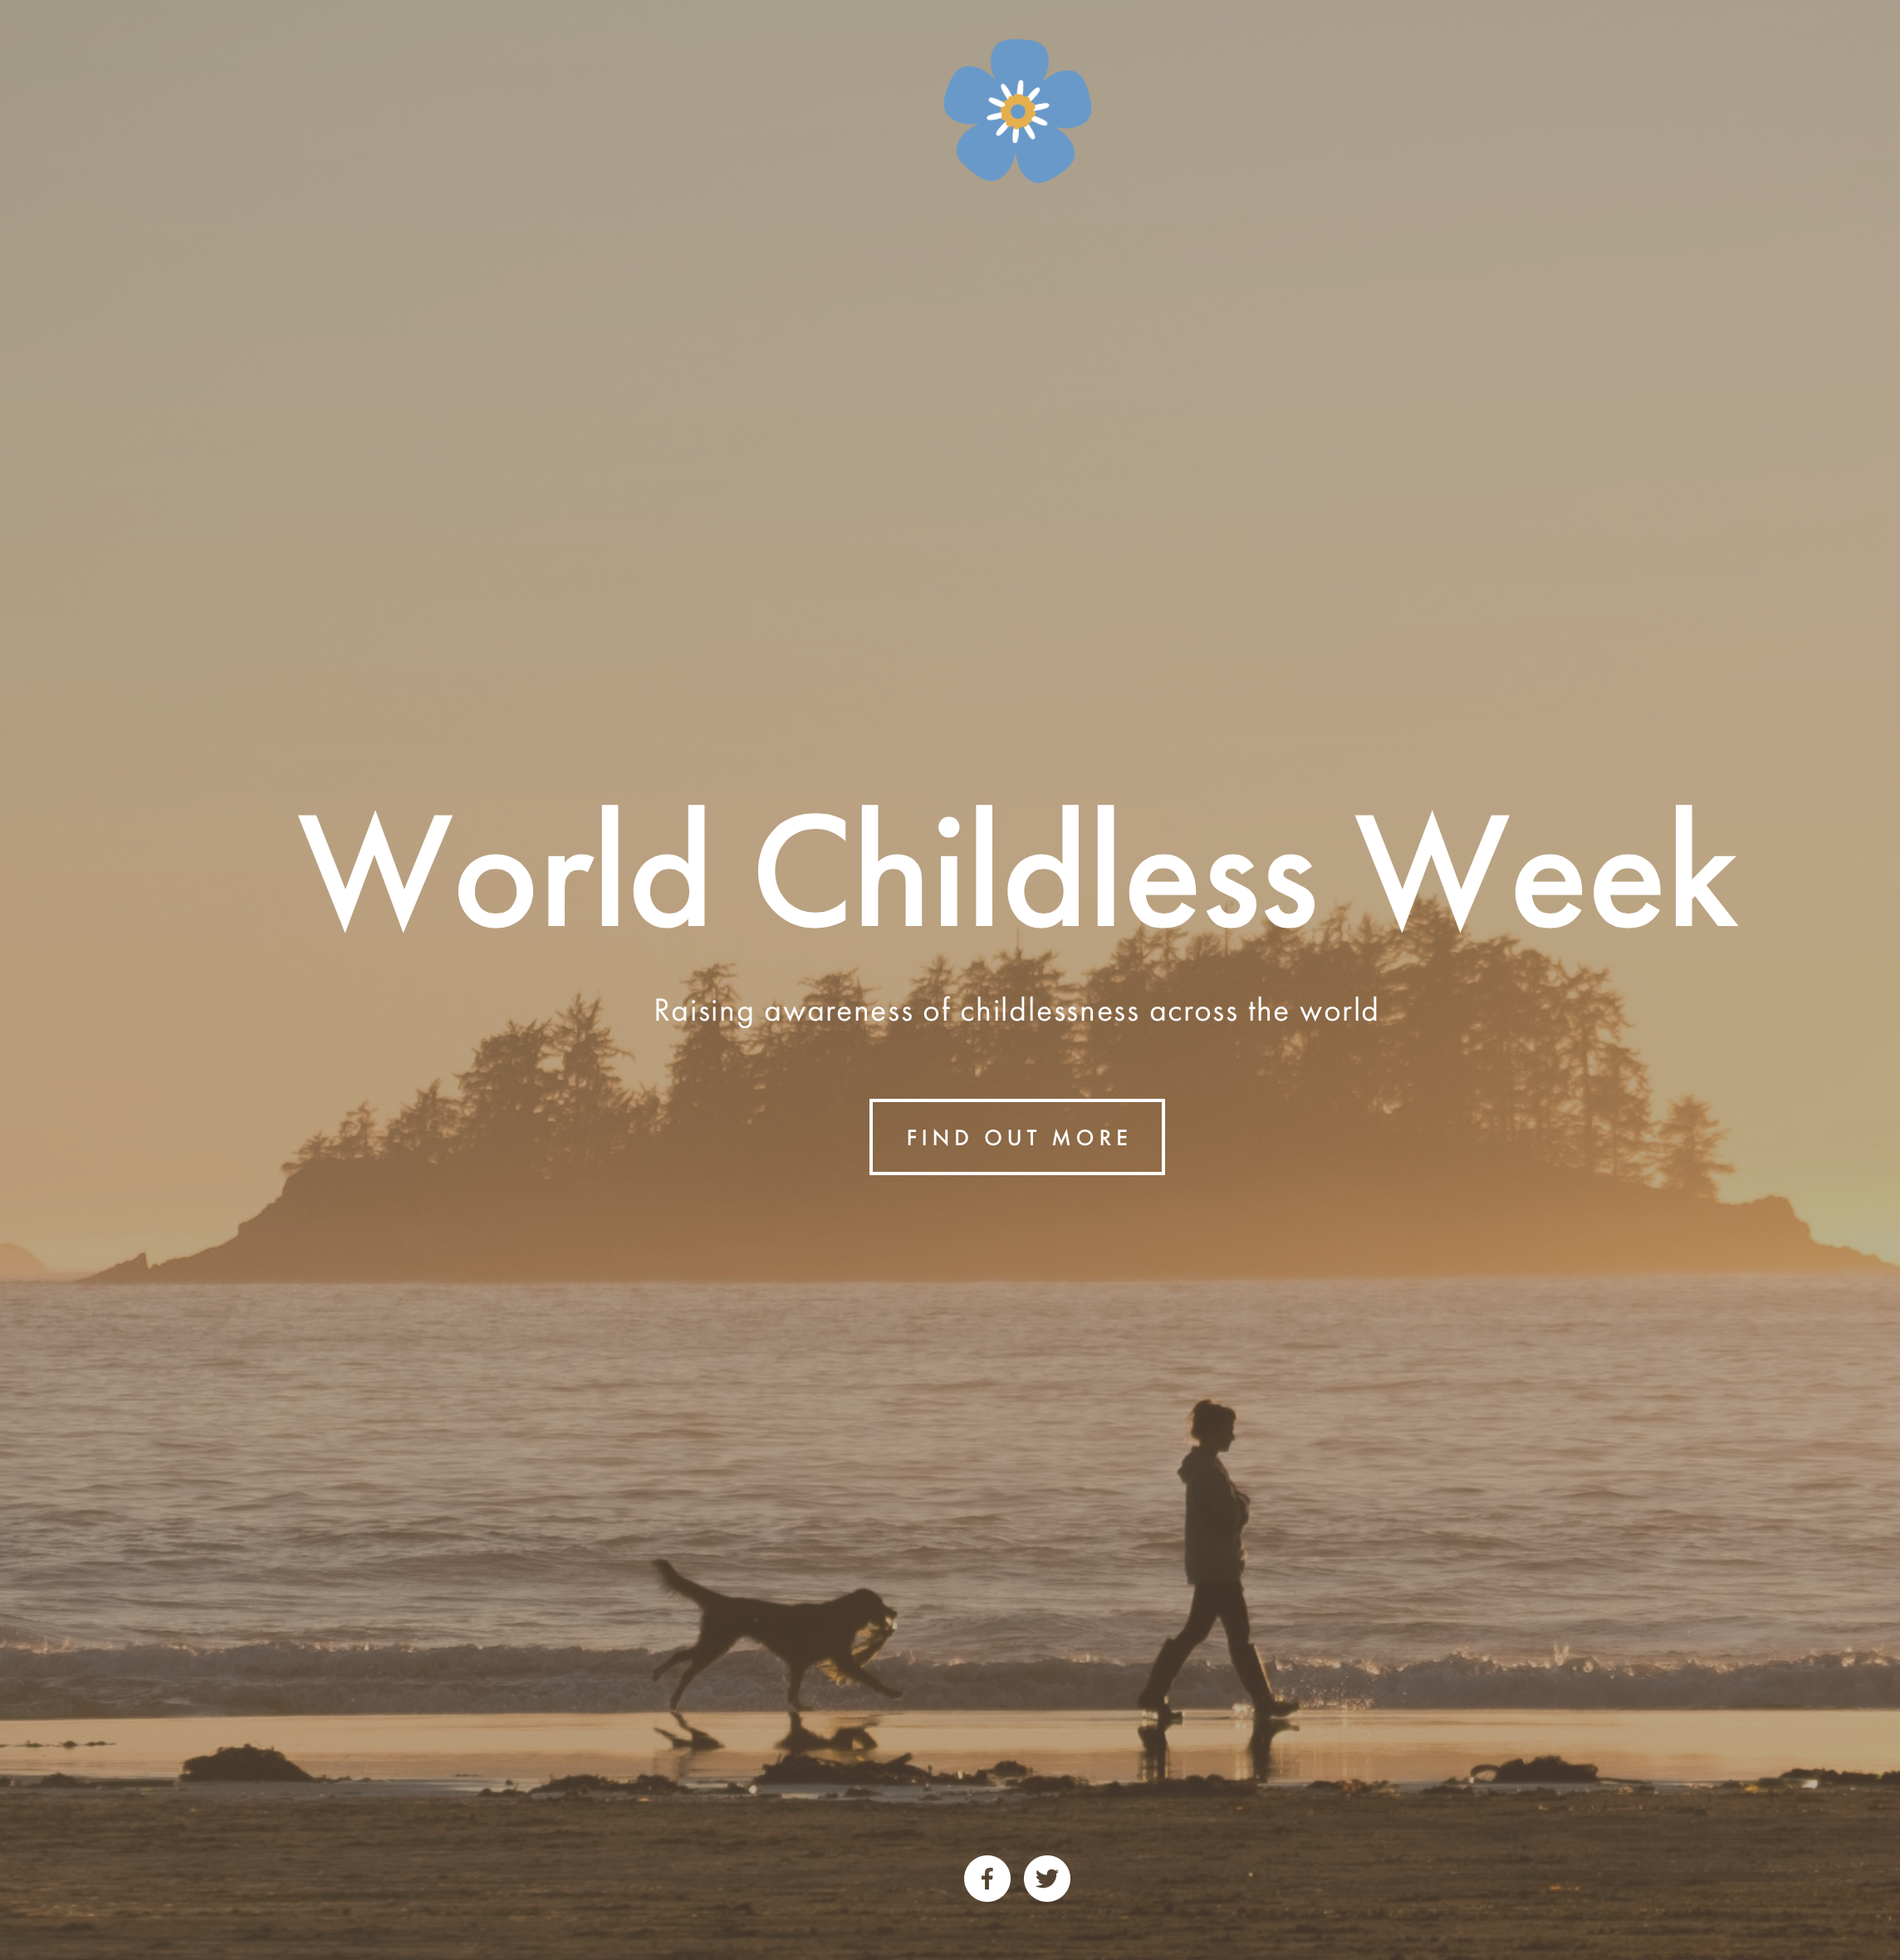 The new World Childless Week website cover page